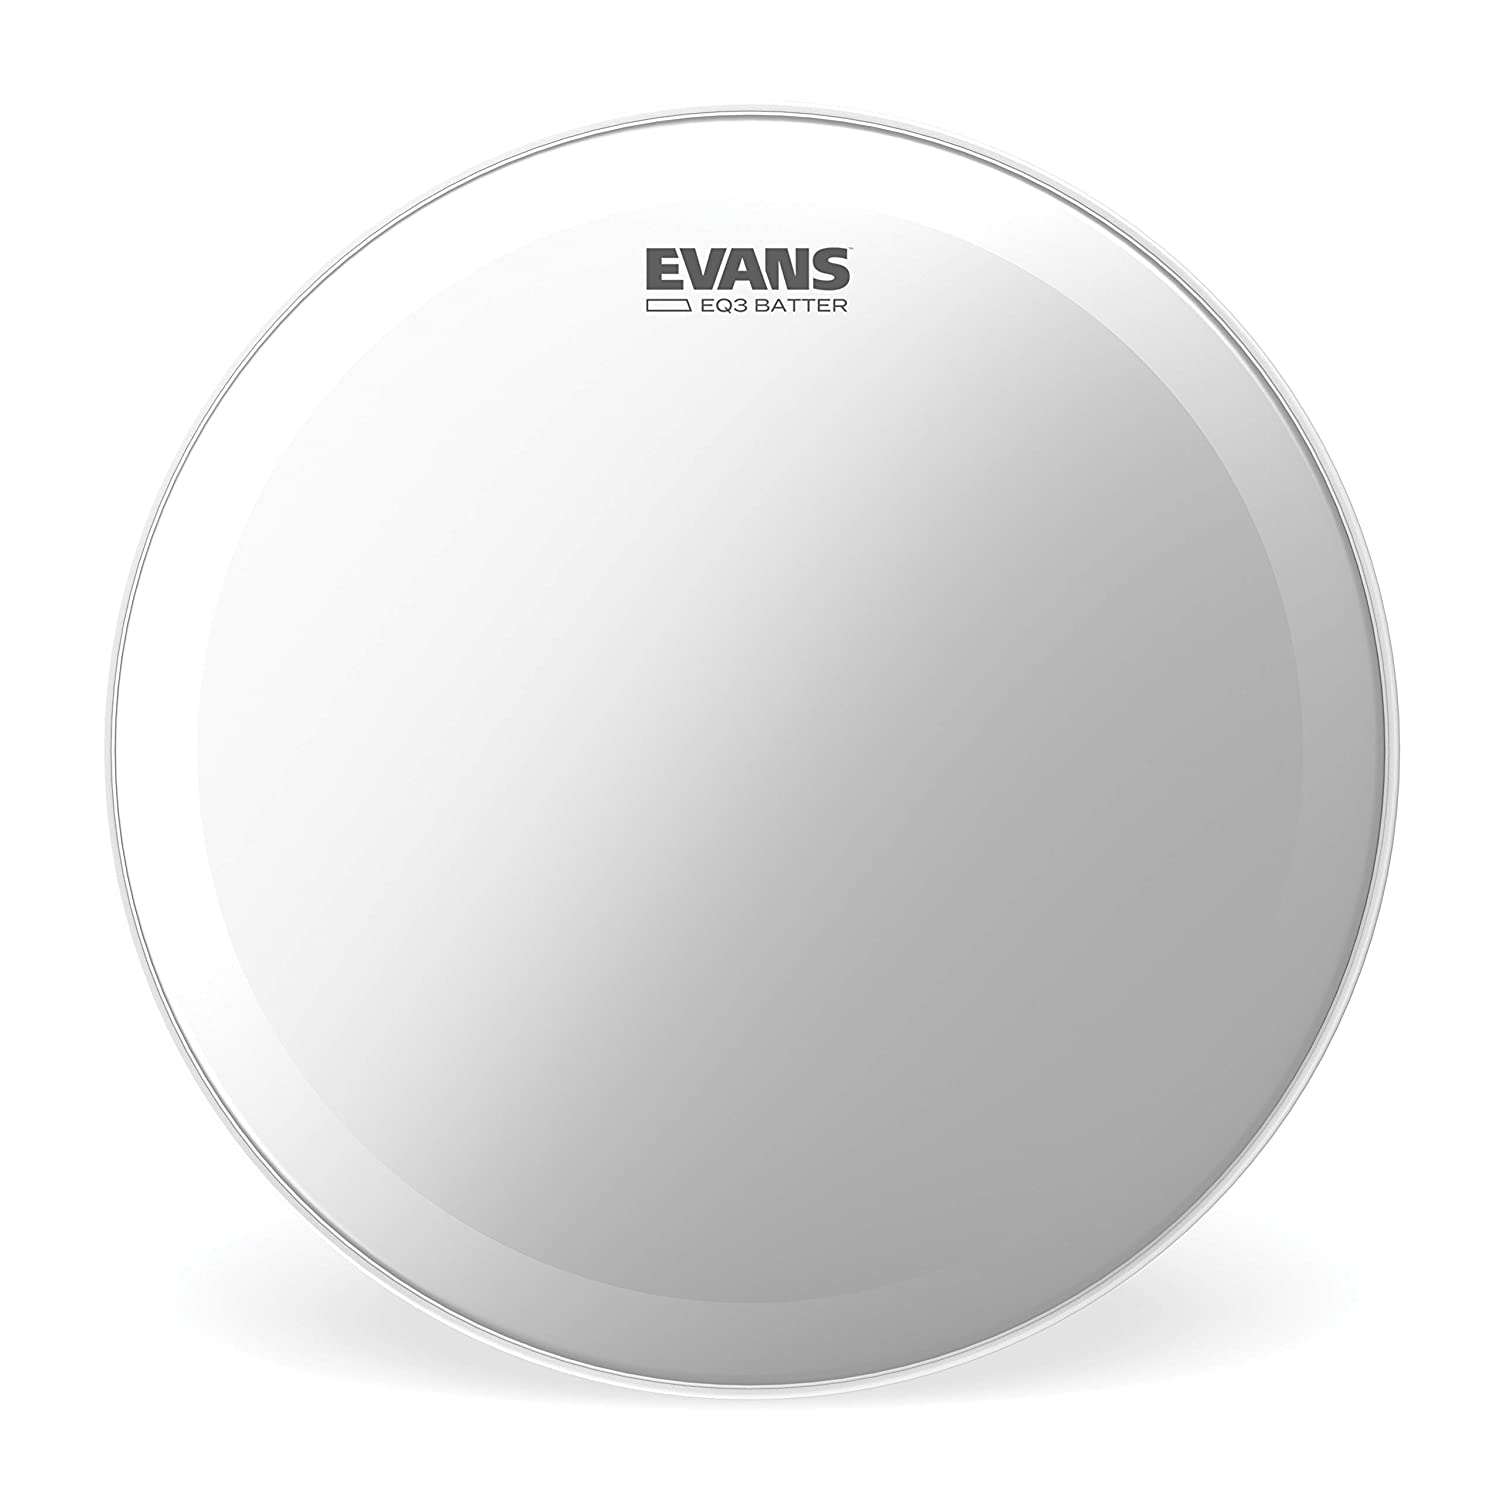 Evans EQ3 Clear Bass Drum Head, 20 Inch 71buw4VGz-L